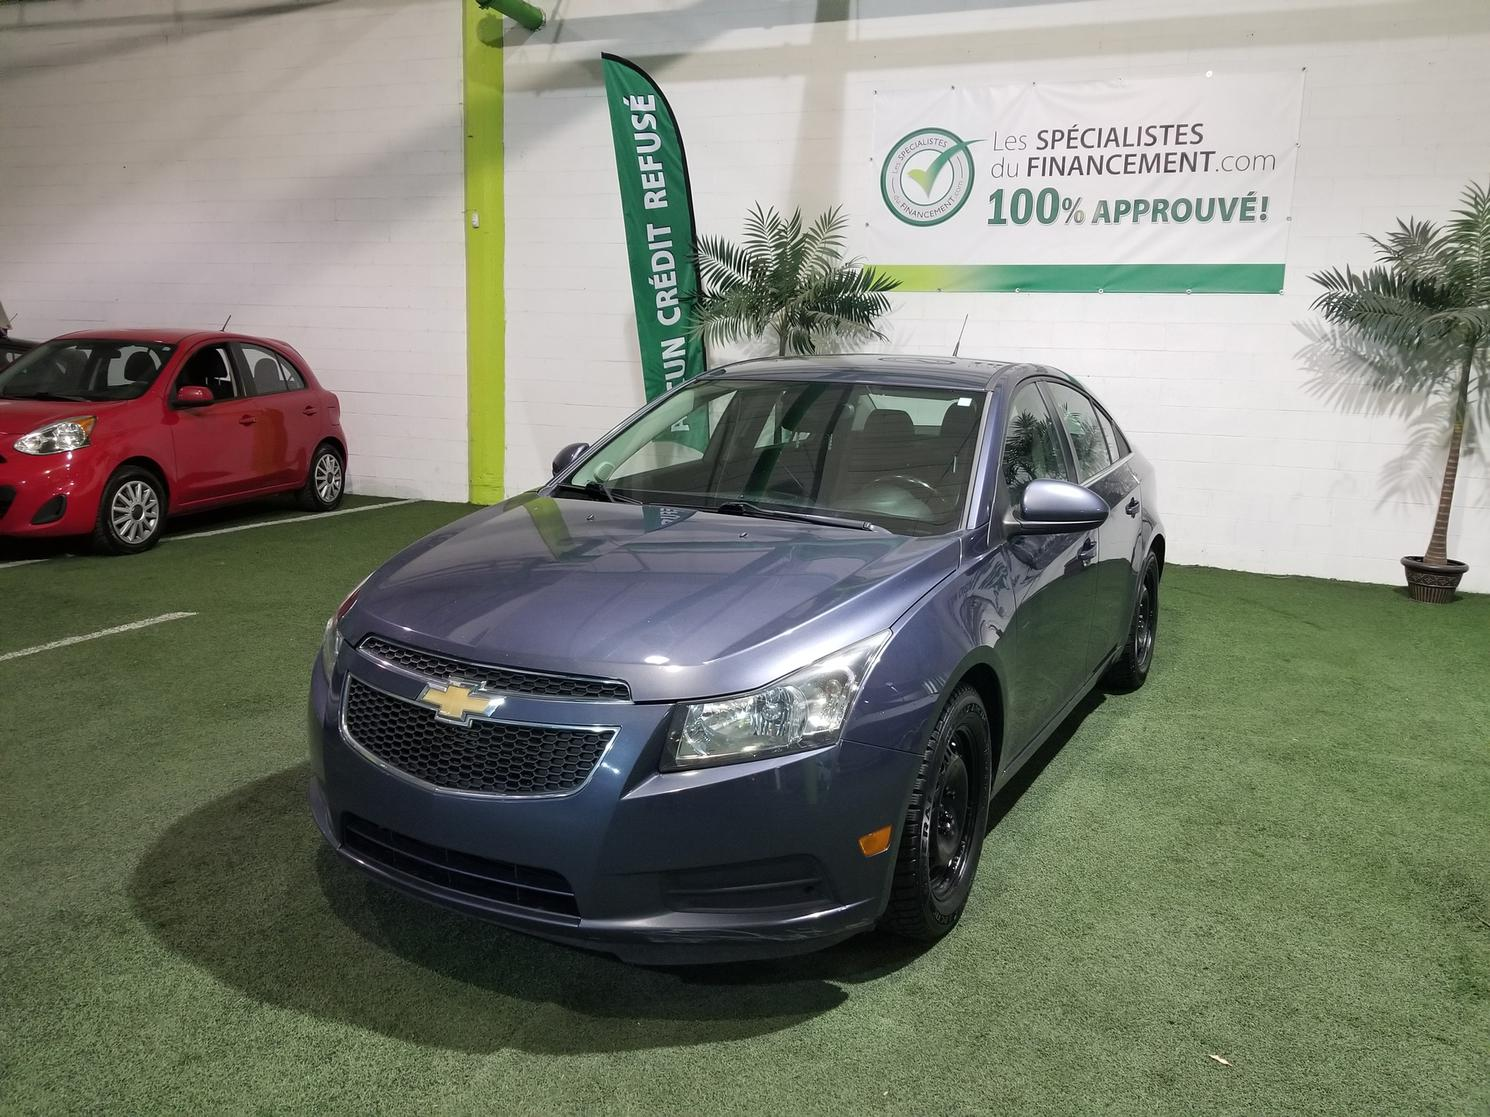 2013 Chevrolet Cruze LT – Turbo #3495-12